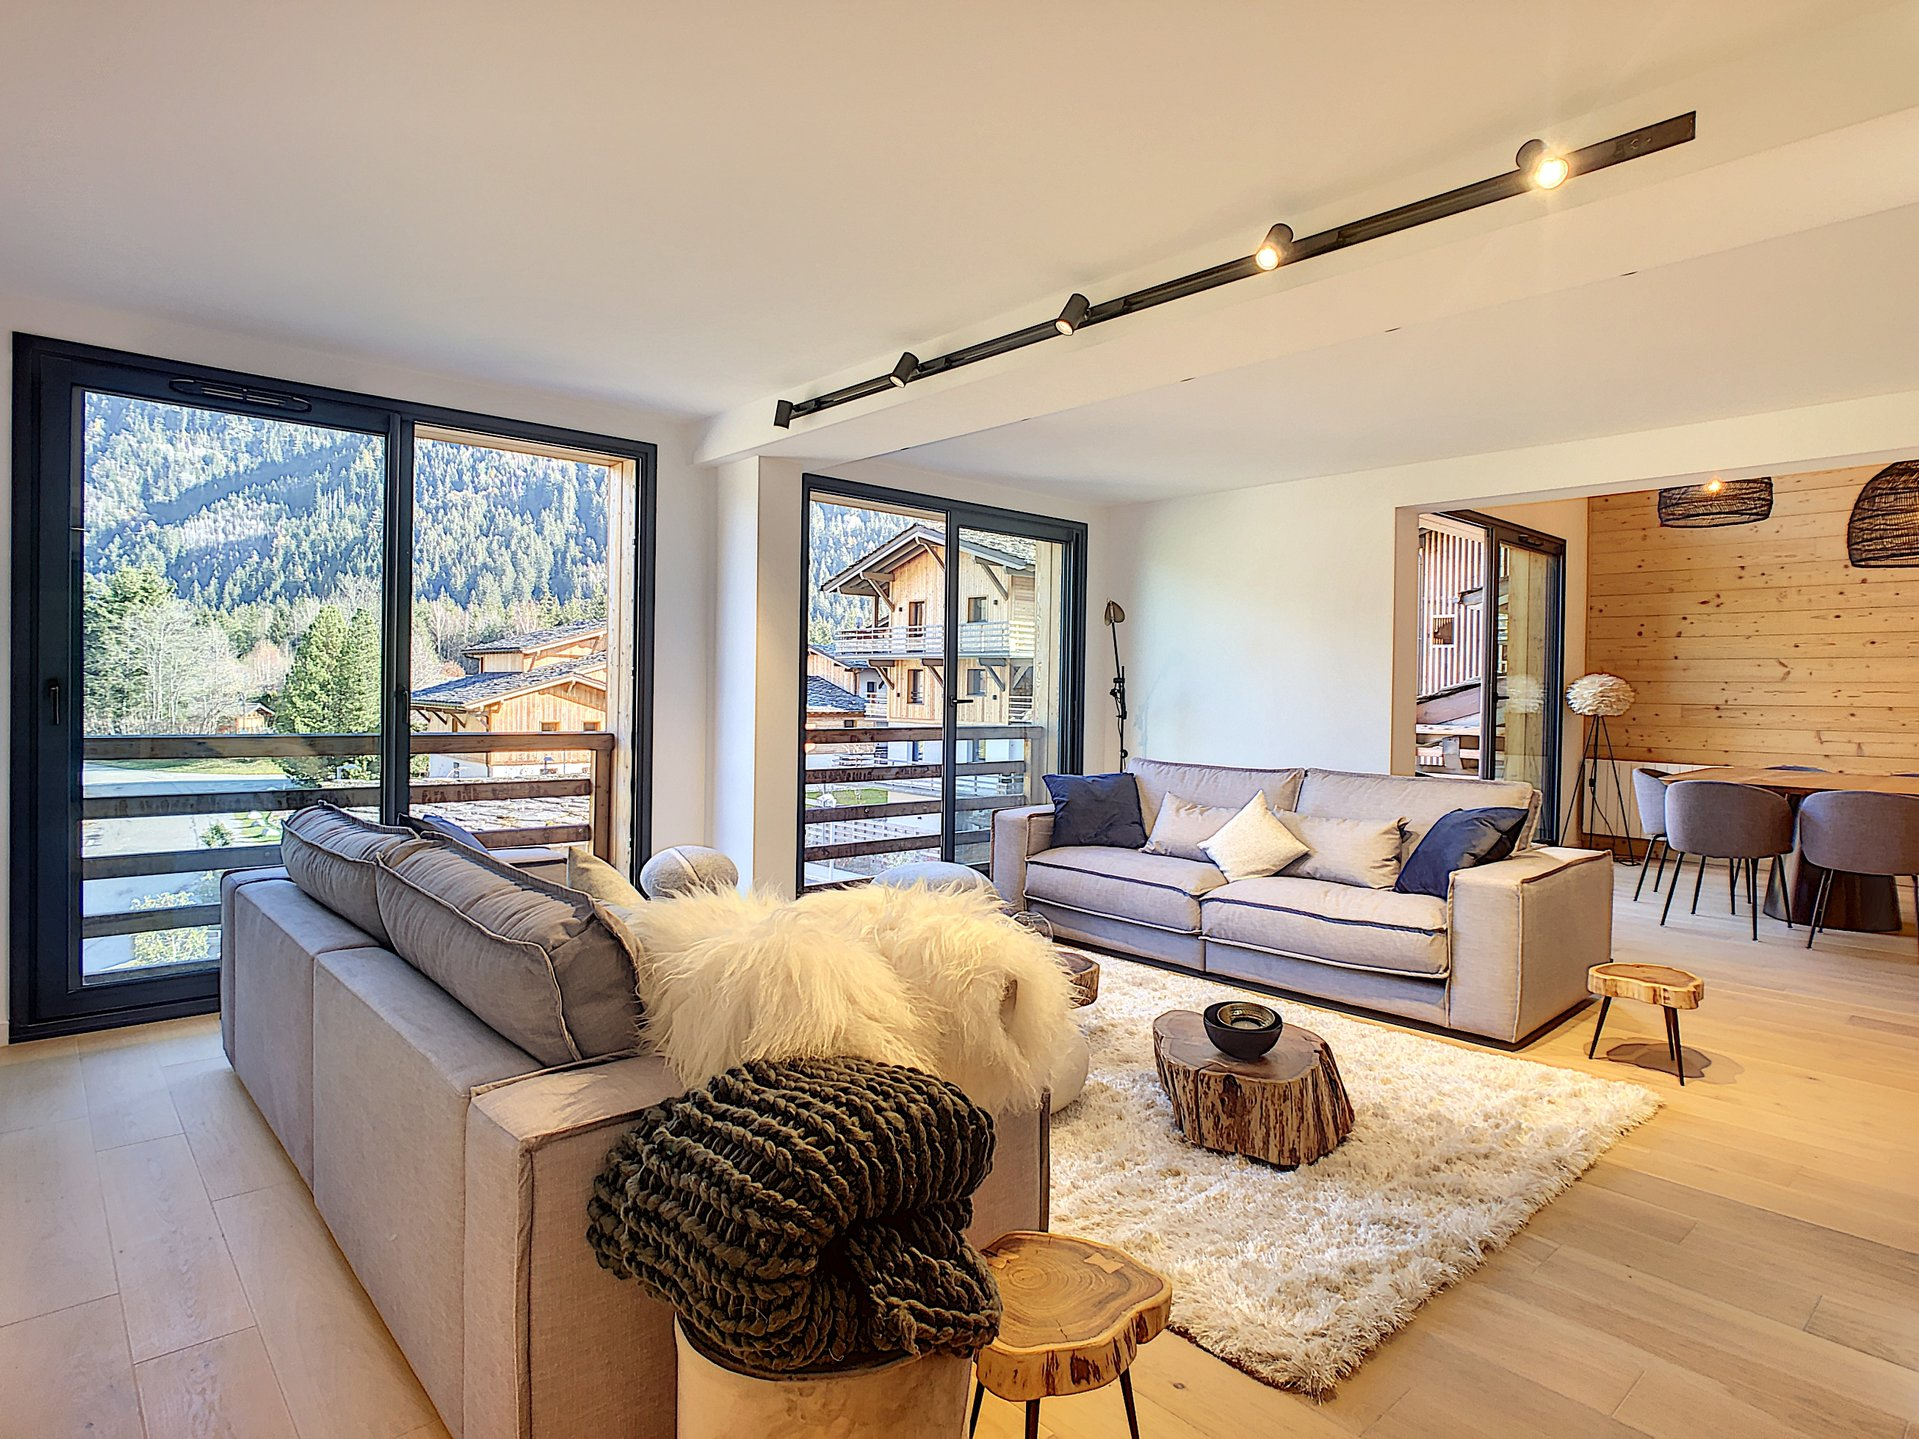 3/4 bedroom apartment, Chamonix Mont-Blanc